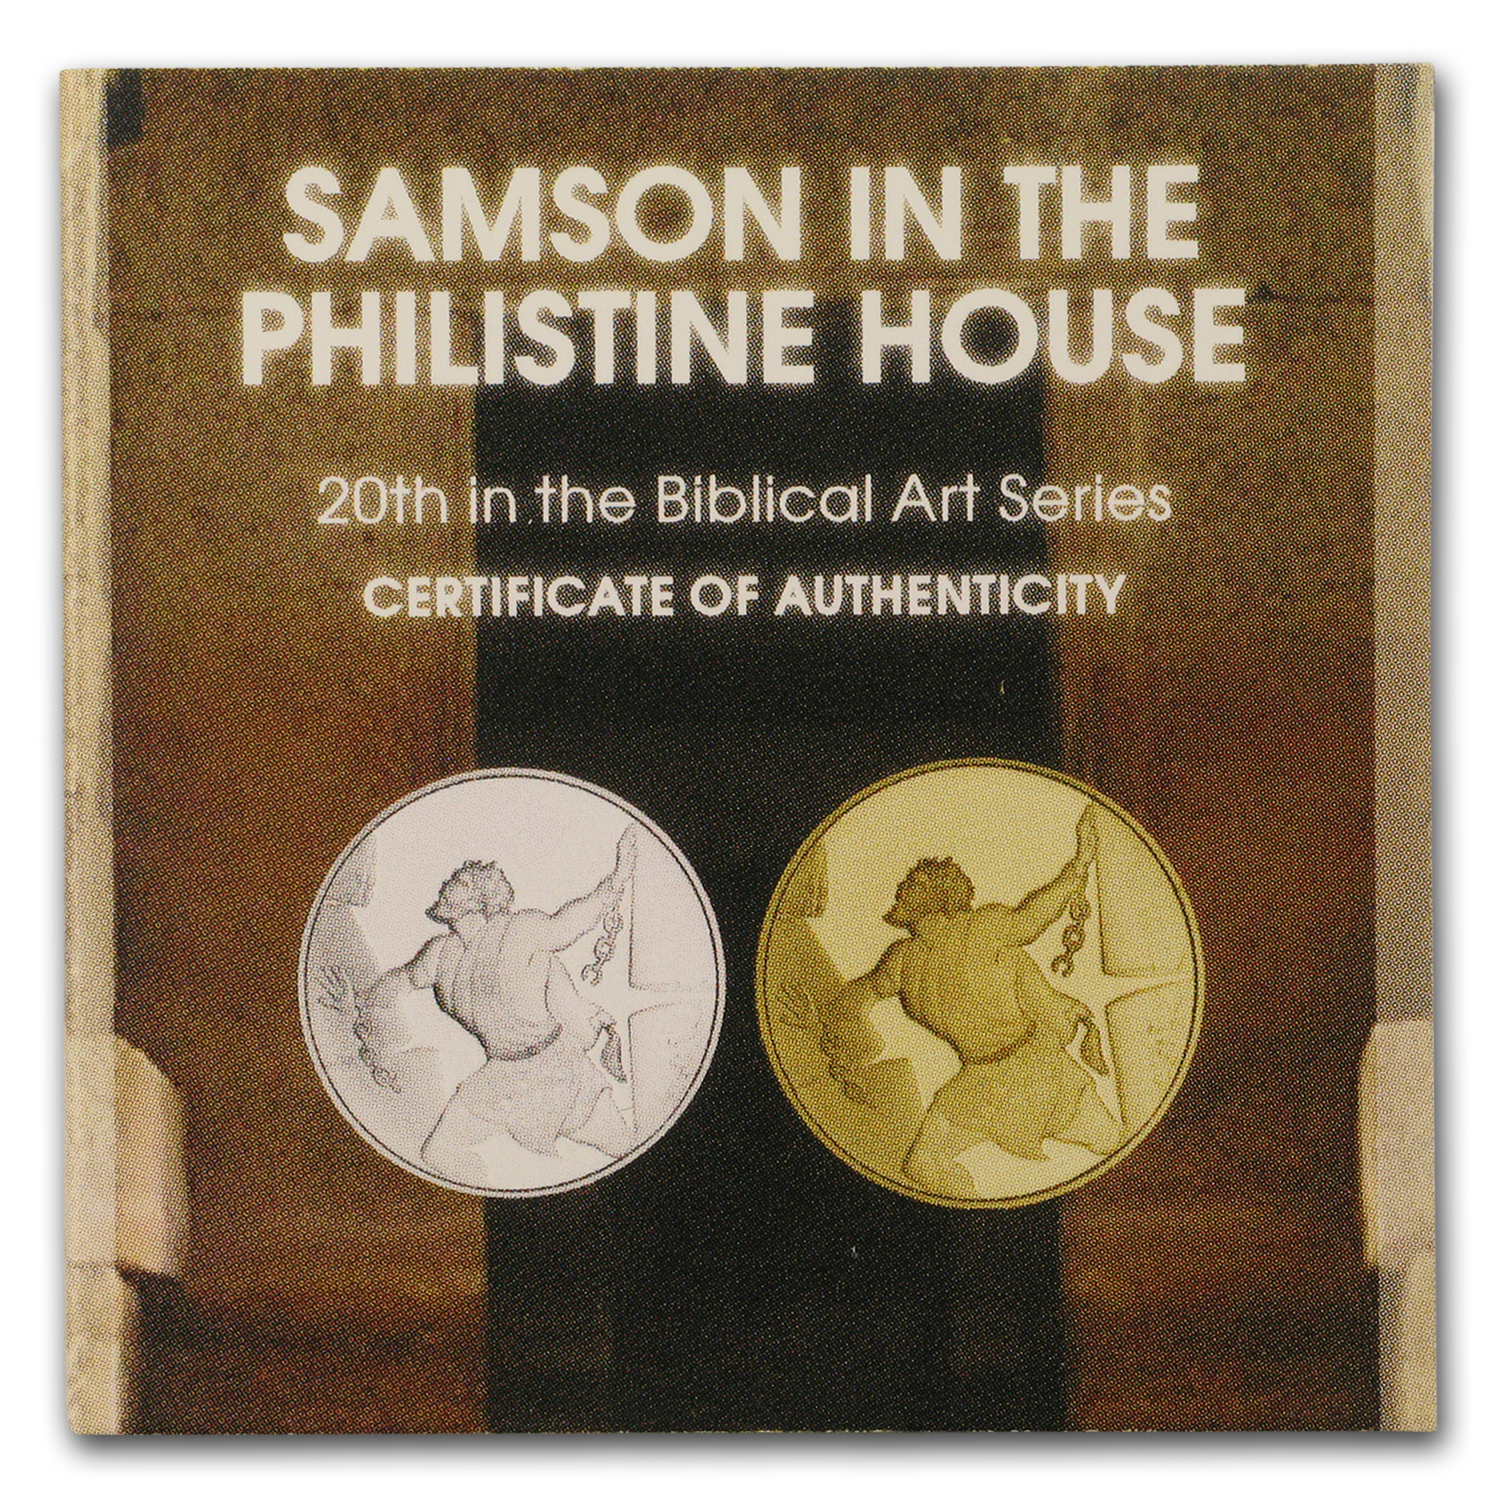 Samson in the Philistine House Smallest Gold Coins Israel 2016 Collectible